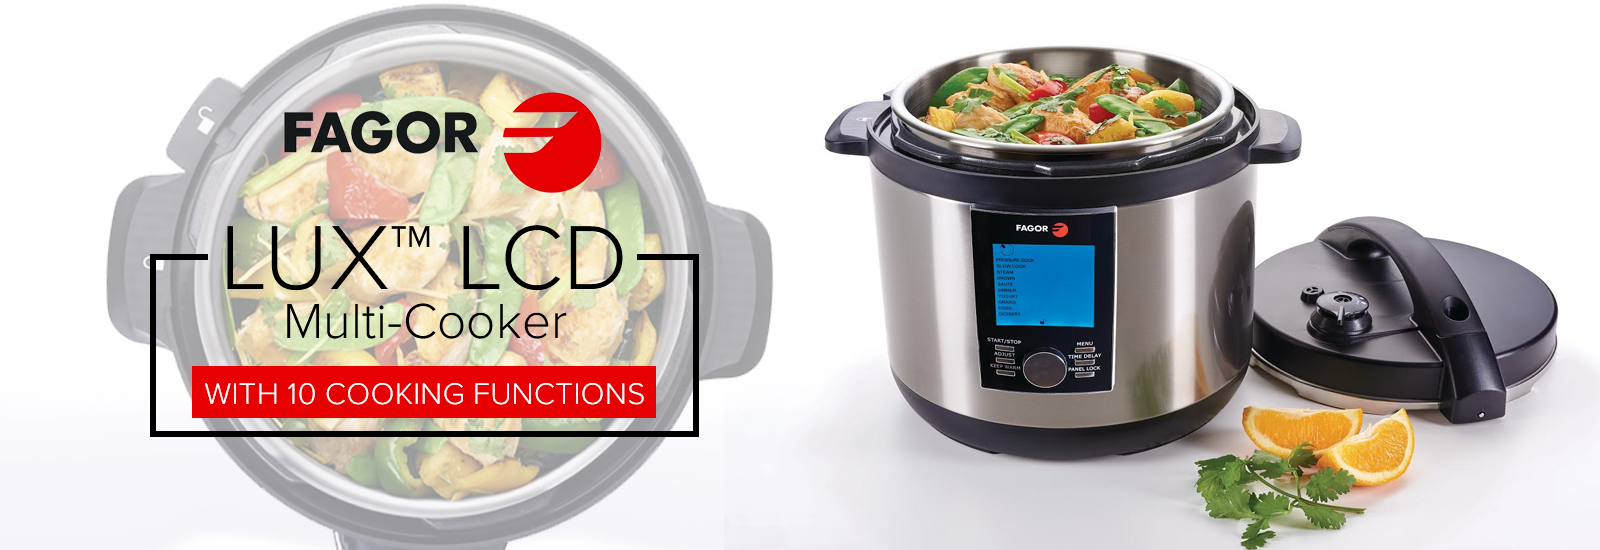 Fagor LUX LCD multi cooker